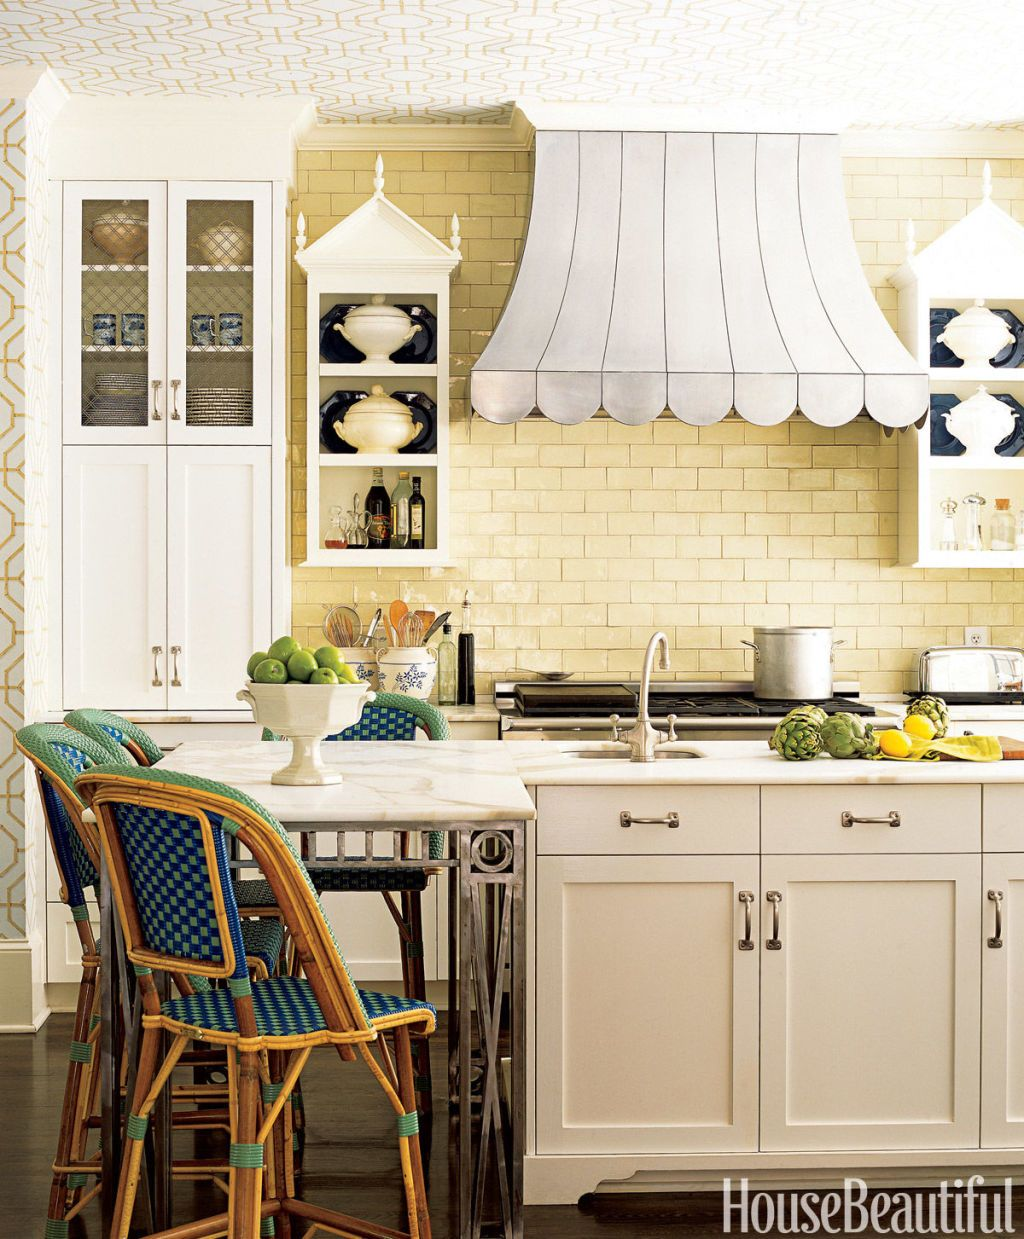 Ask a Designer: How Do I Decorate a Small Kitchen?